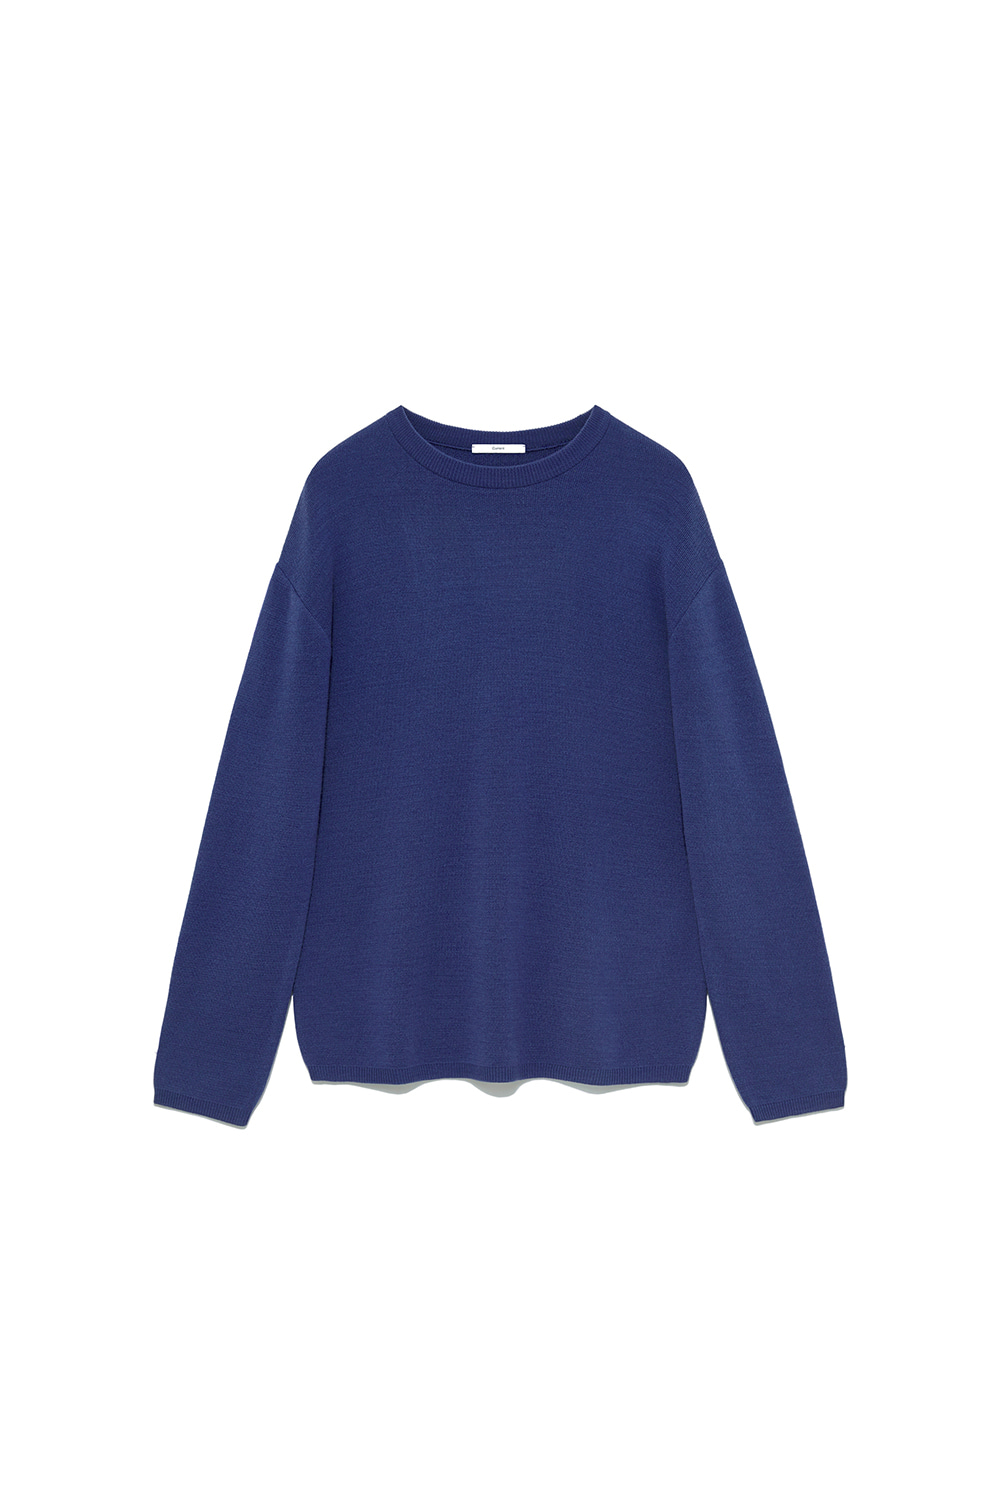 Cashmere Knit Men [Royal Blue]